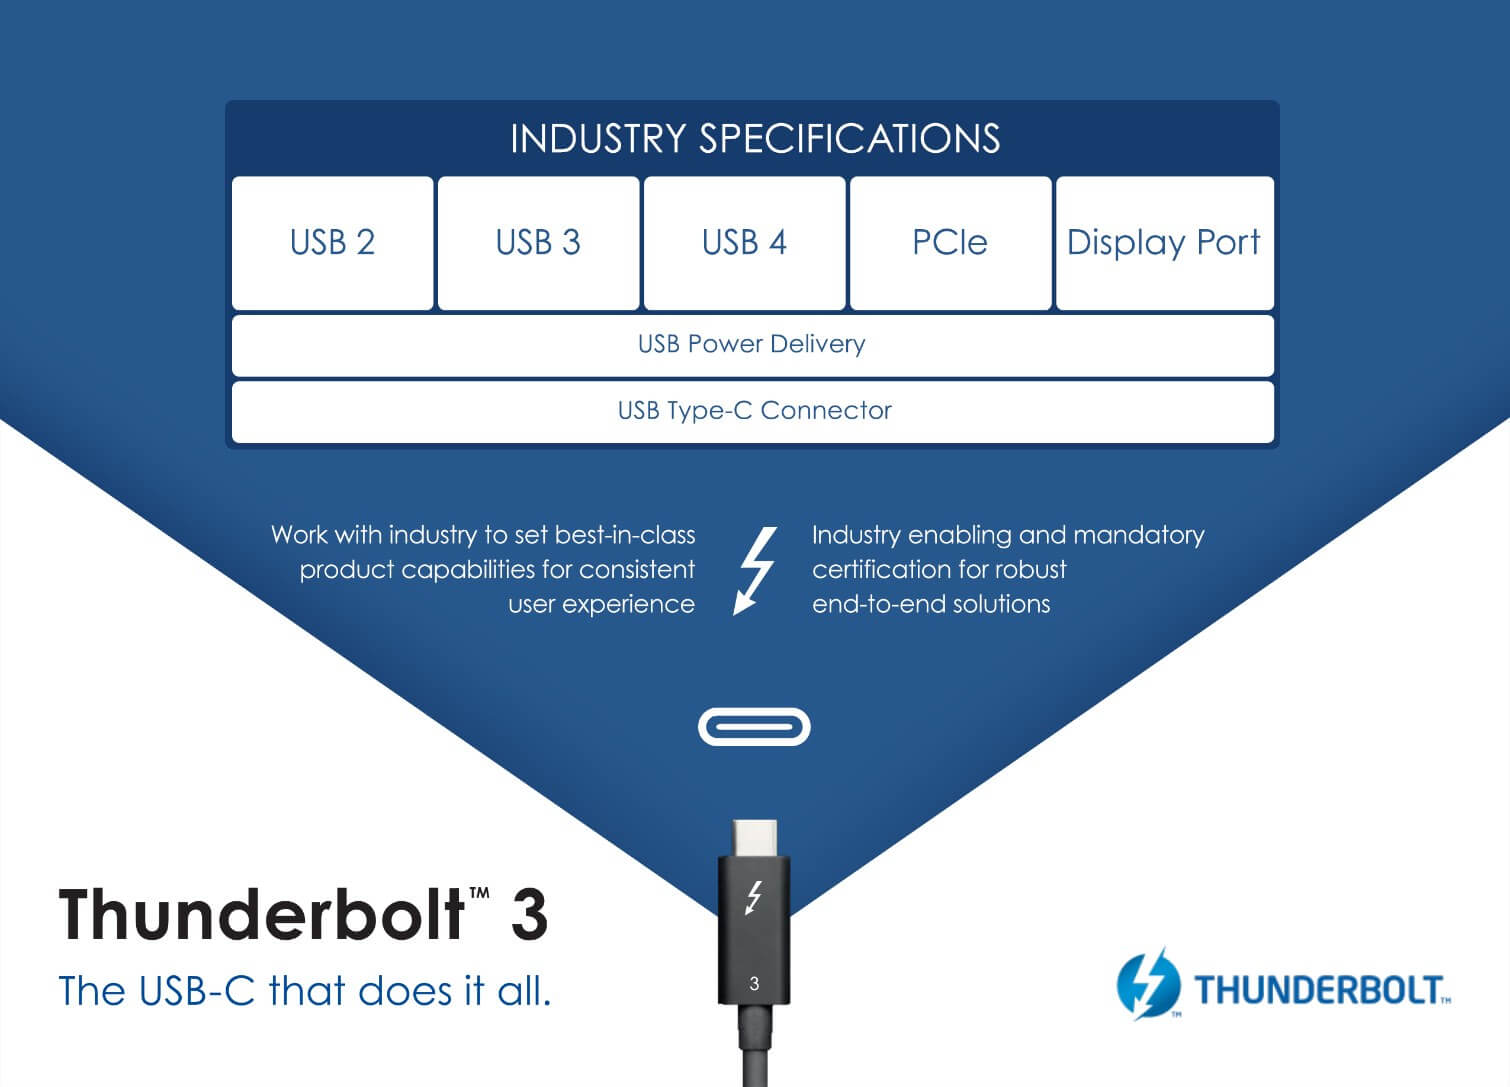 USB 4 Officially Announced: Supports Up to 40Gbps Transfer Speed